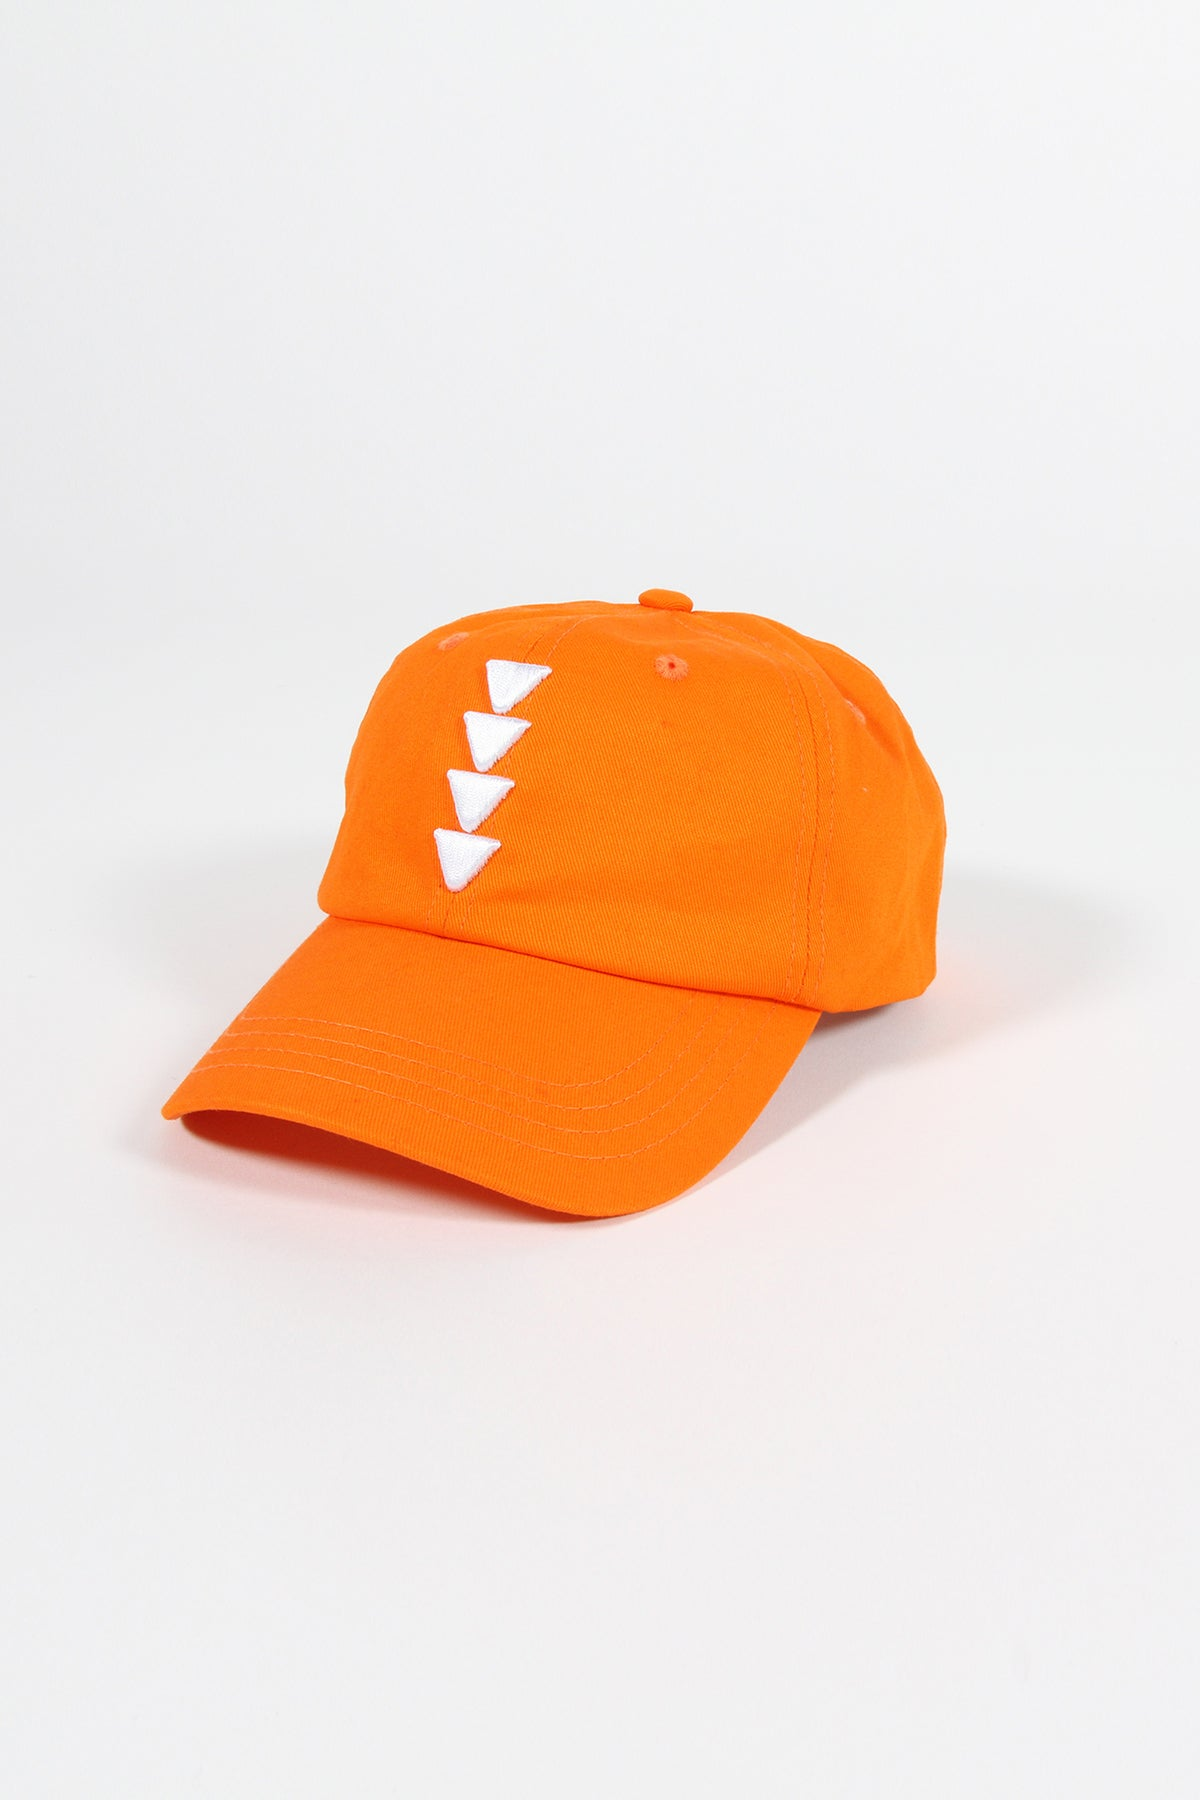 17 London - Orange Norland cap